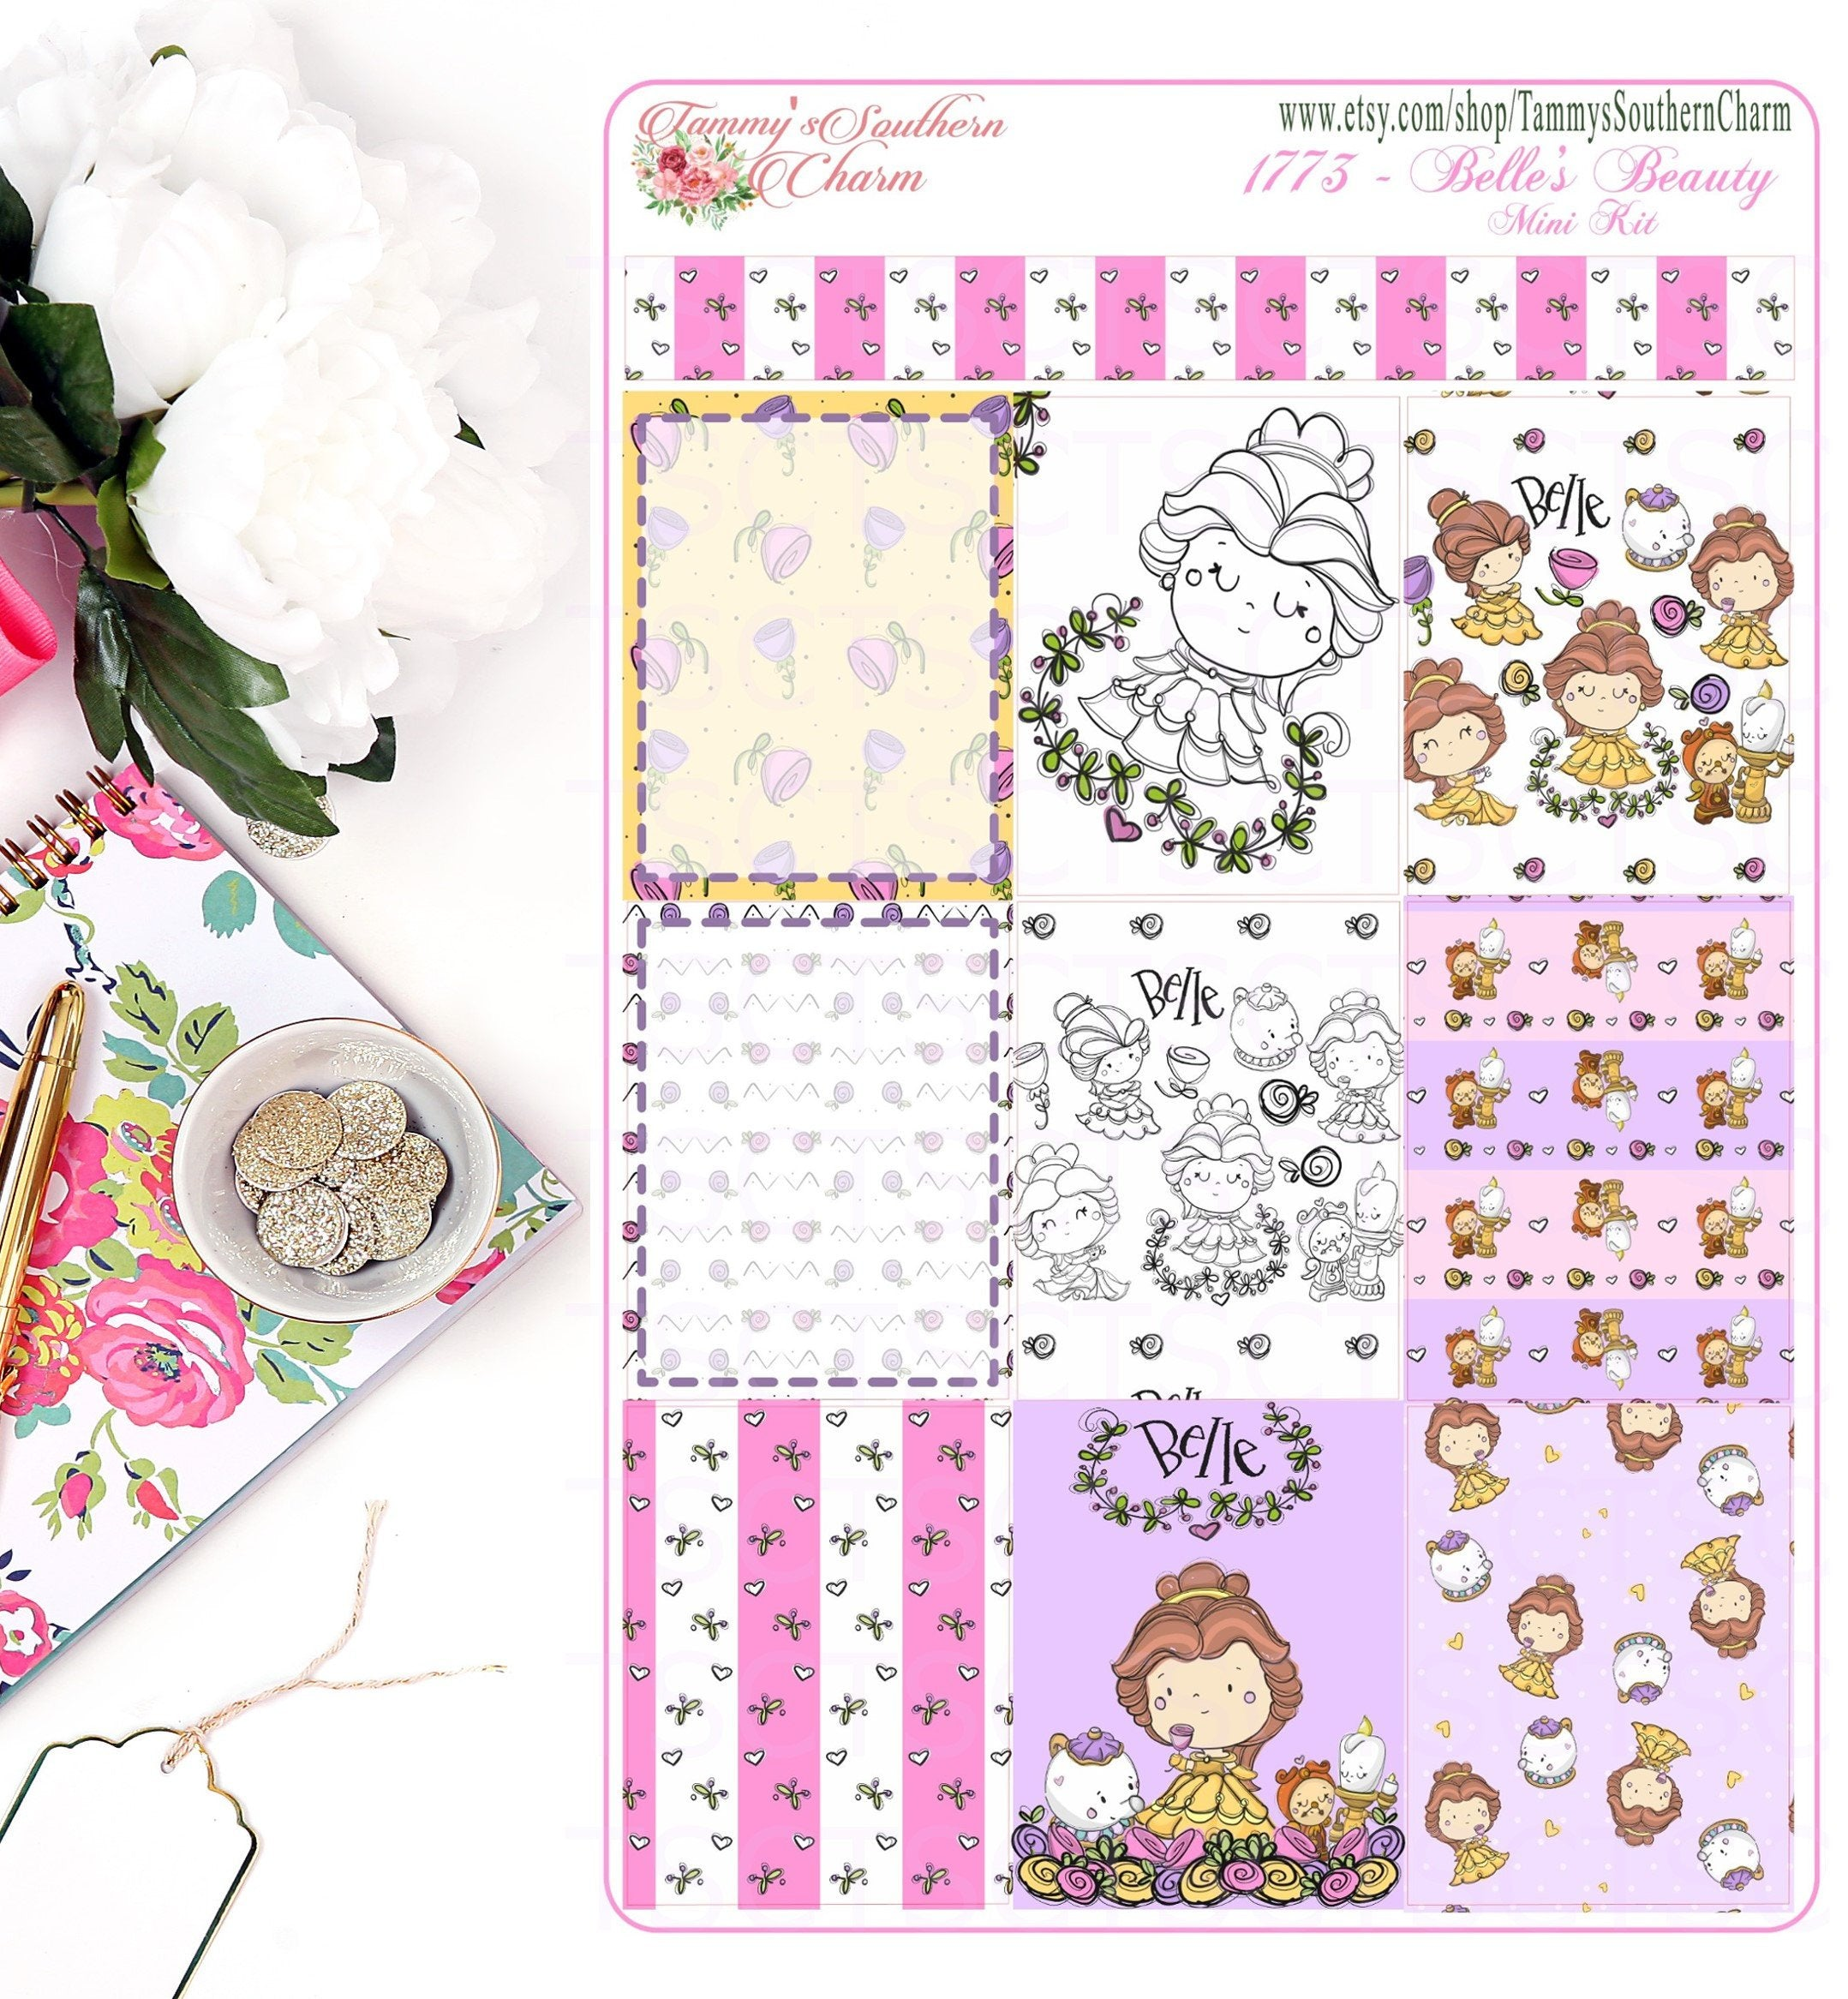 1773 BELLE'S BEAUTY - Stickers, Planner Stickers, Traveler's nb stickers, Planner Layout, Princess Stickers, Princess Layouts